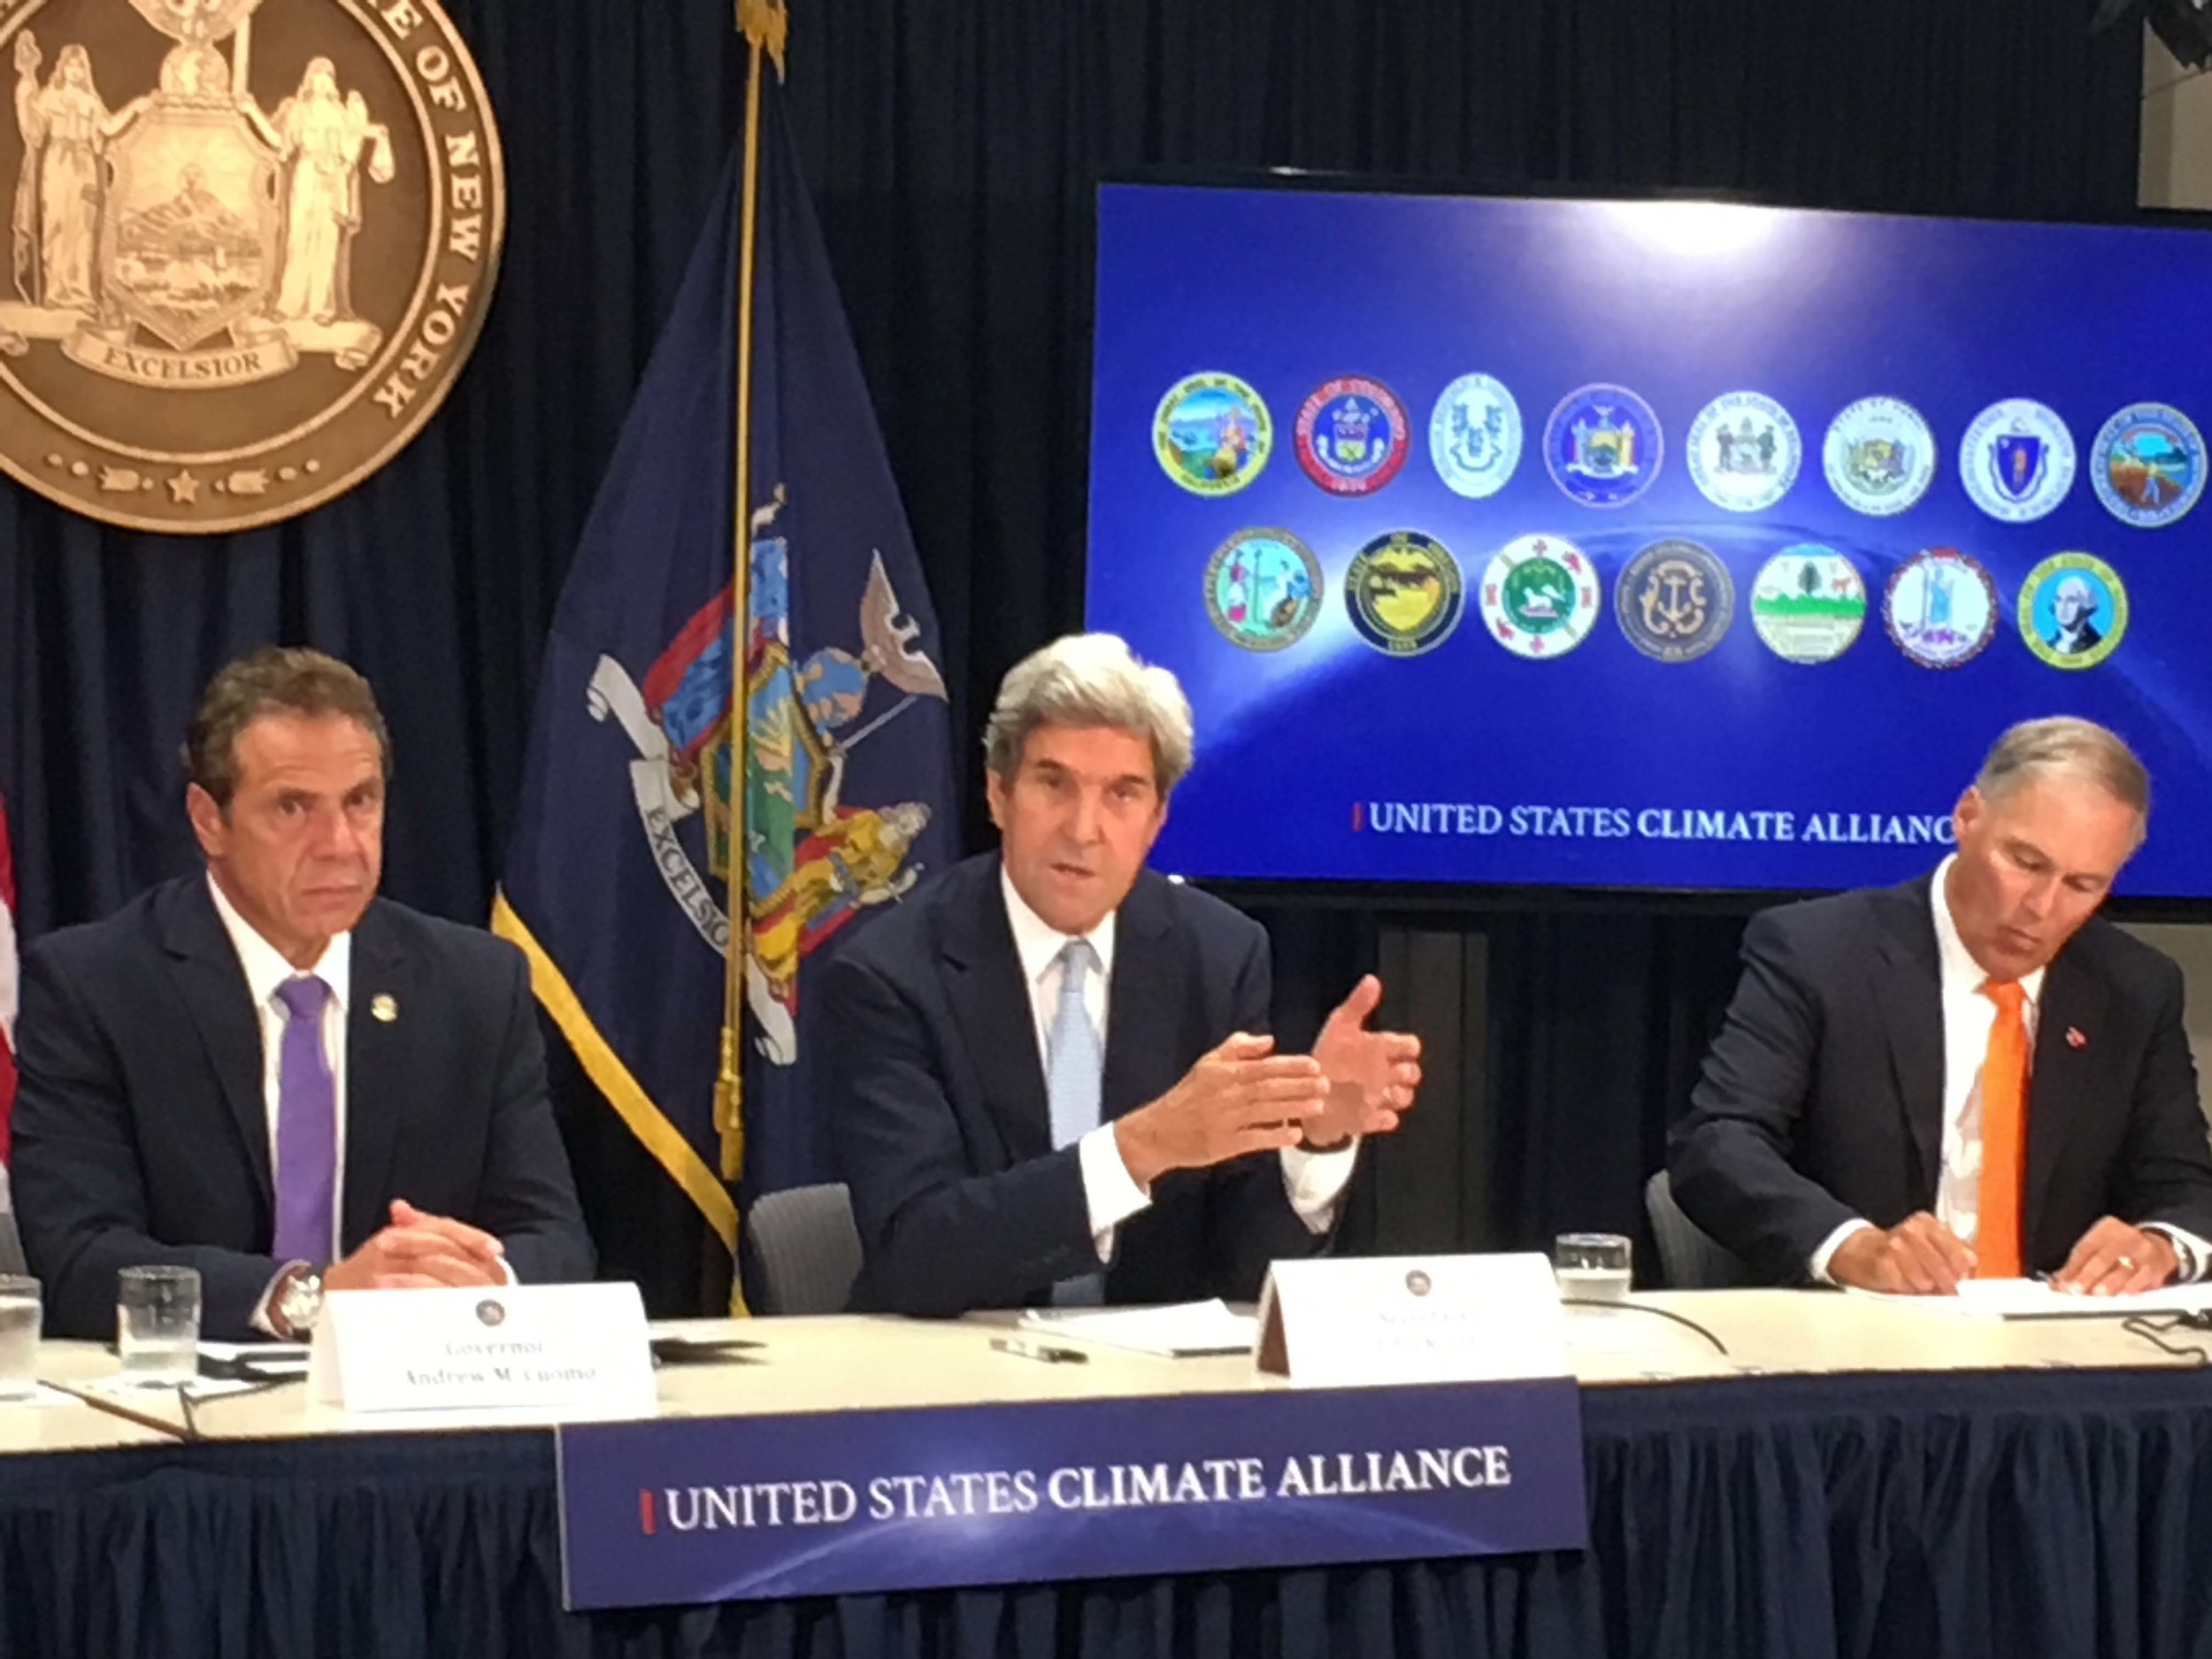 Governors Andrew Cuomo (NY) and Jay Inslee (WA) join former US Secretary of State John Kerry to announce progress of the US Climate Alliance.  Photo by TNC.